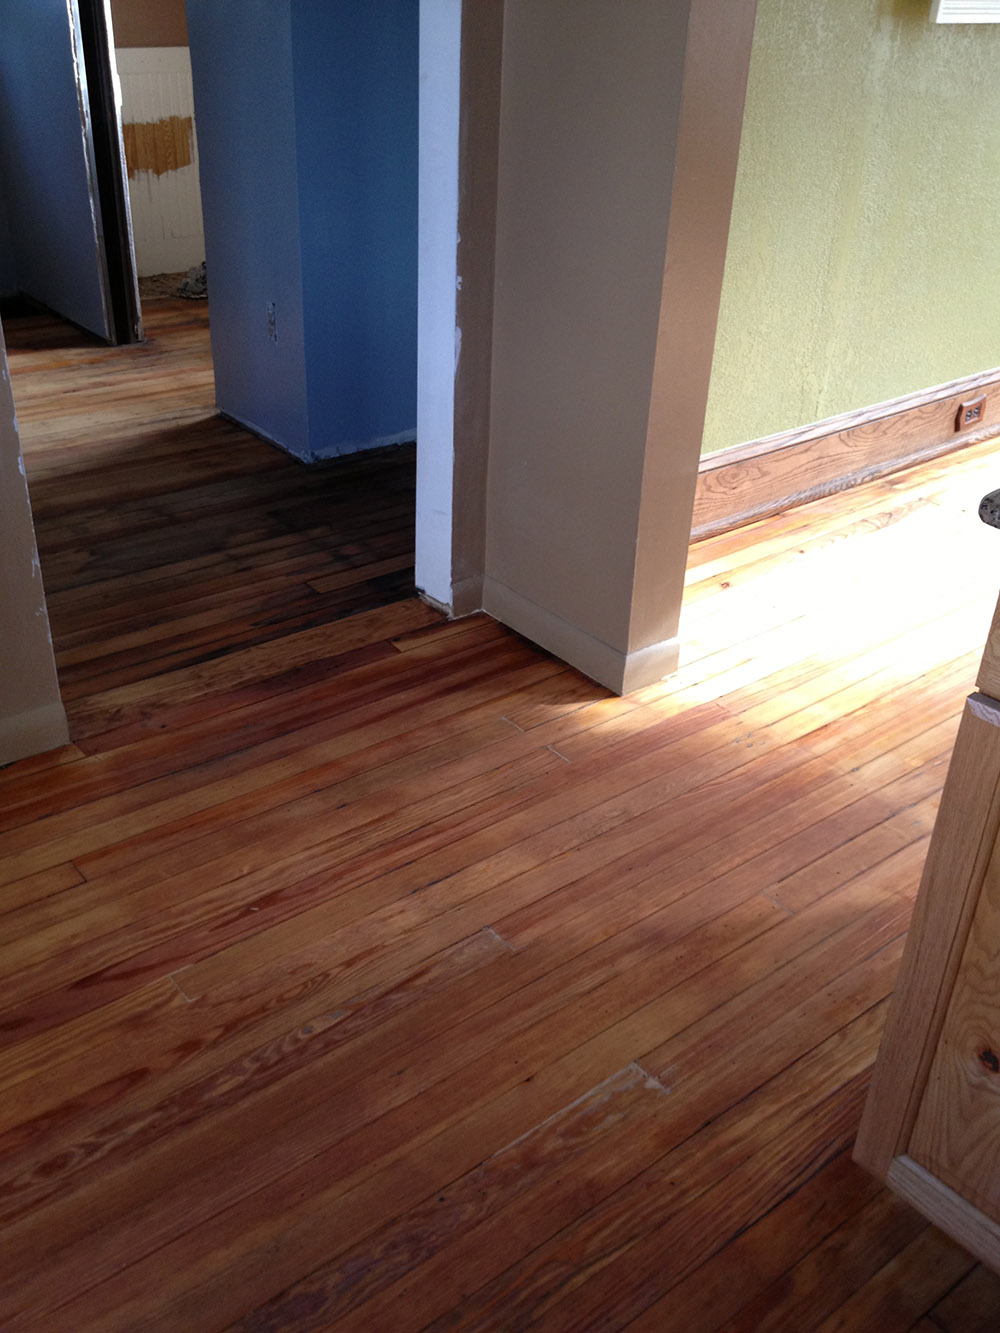 Mudroom renovation hardwood floors refinished 1 more for Floor refinishing